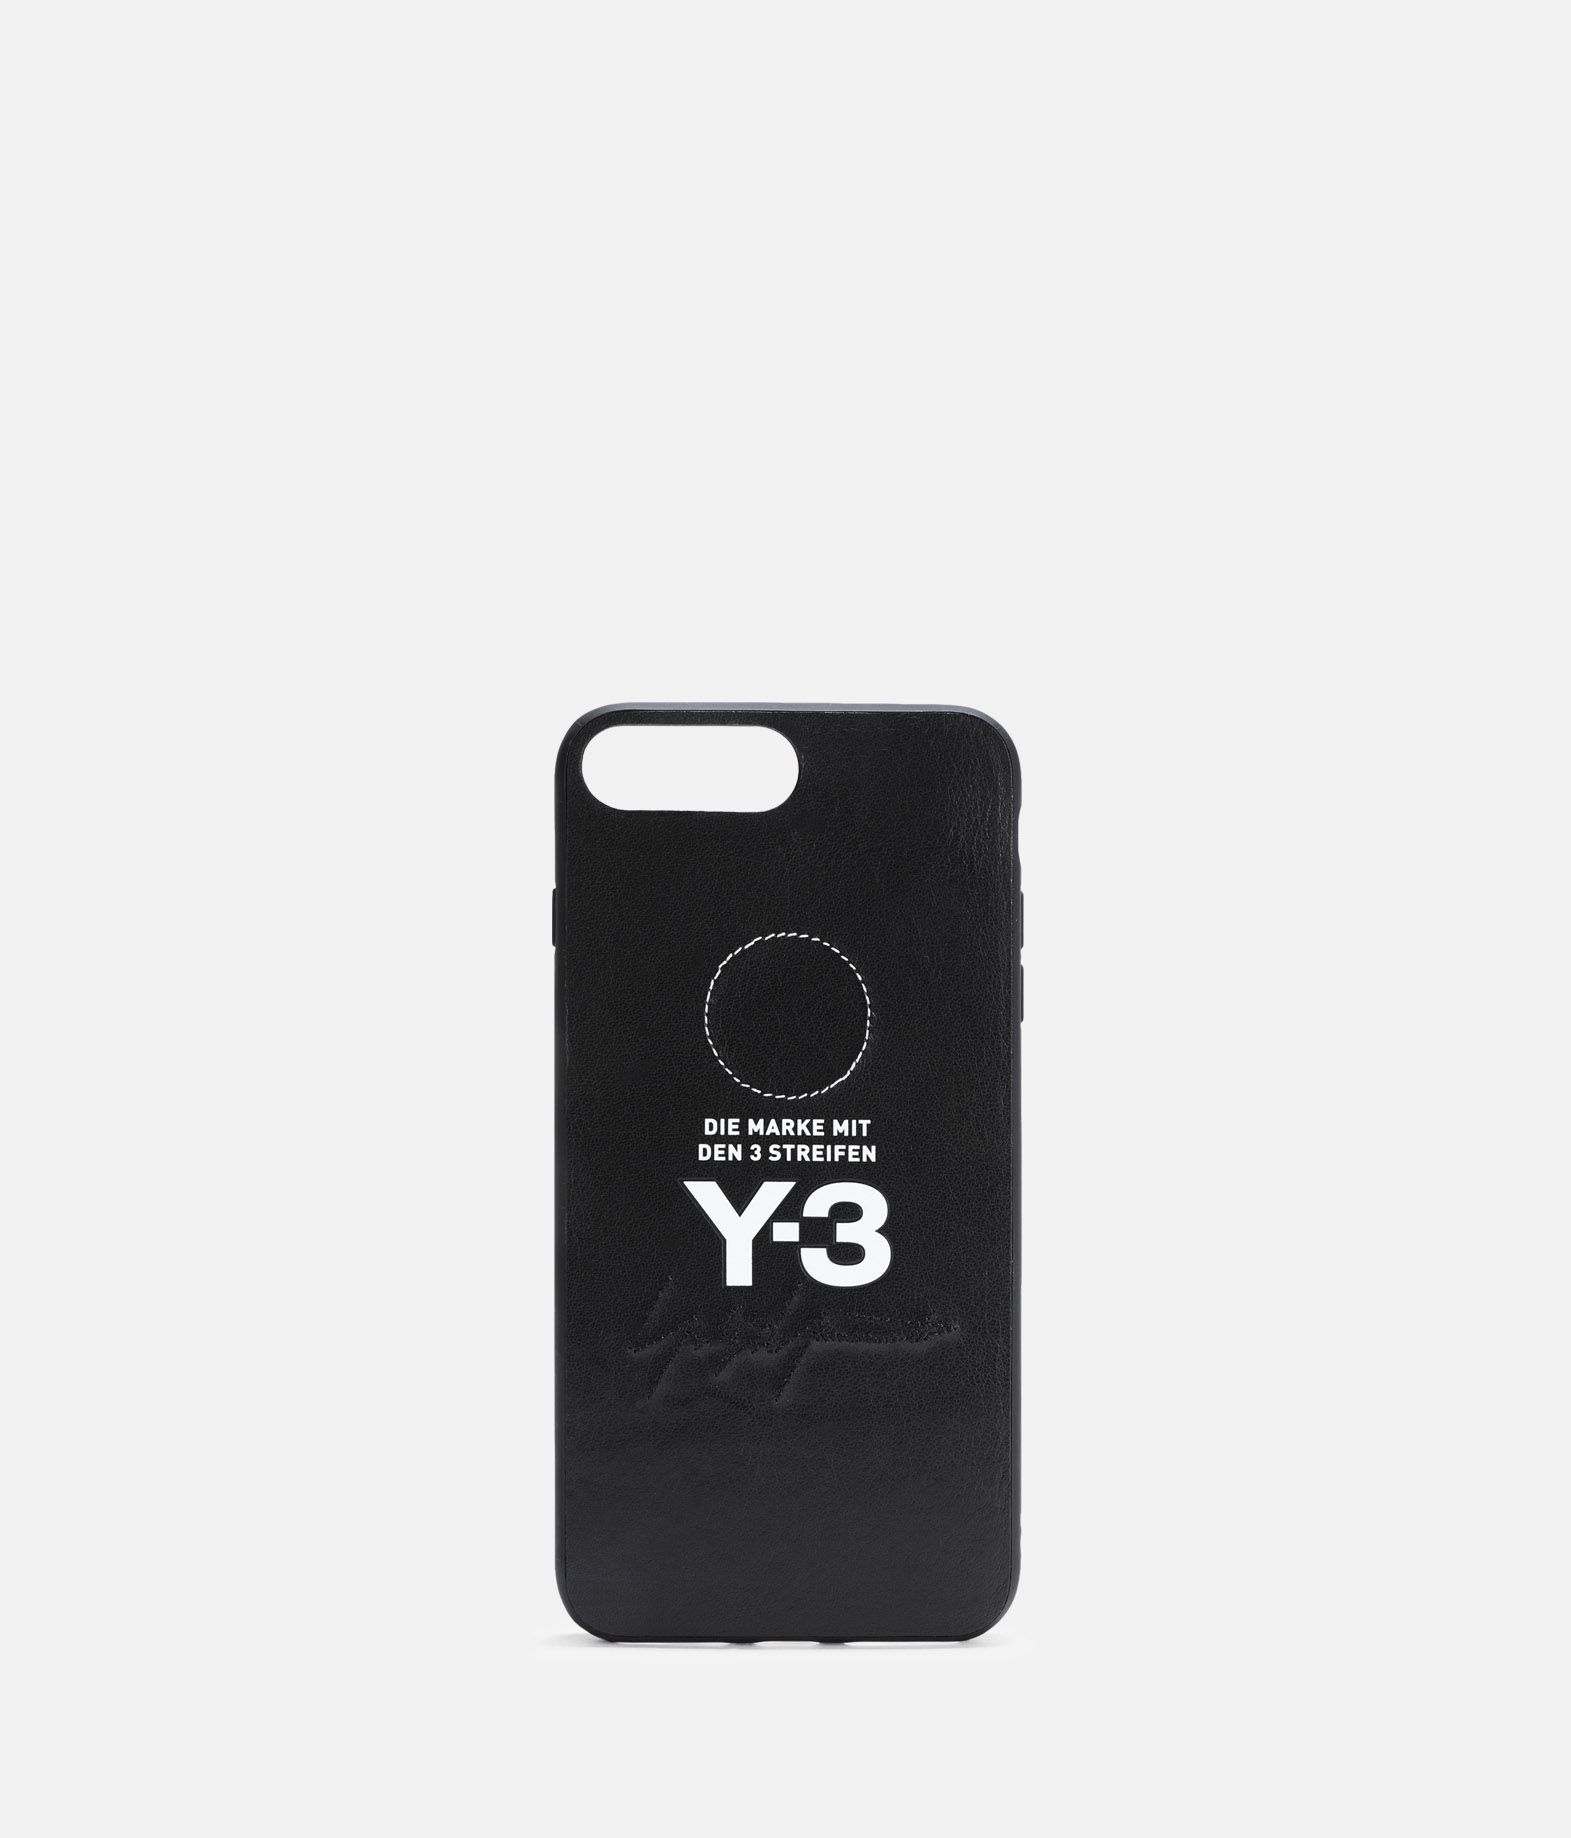 Y-3 Moulded Case Leather iPhone 6/6S/7/8+  Handy Case E f